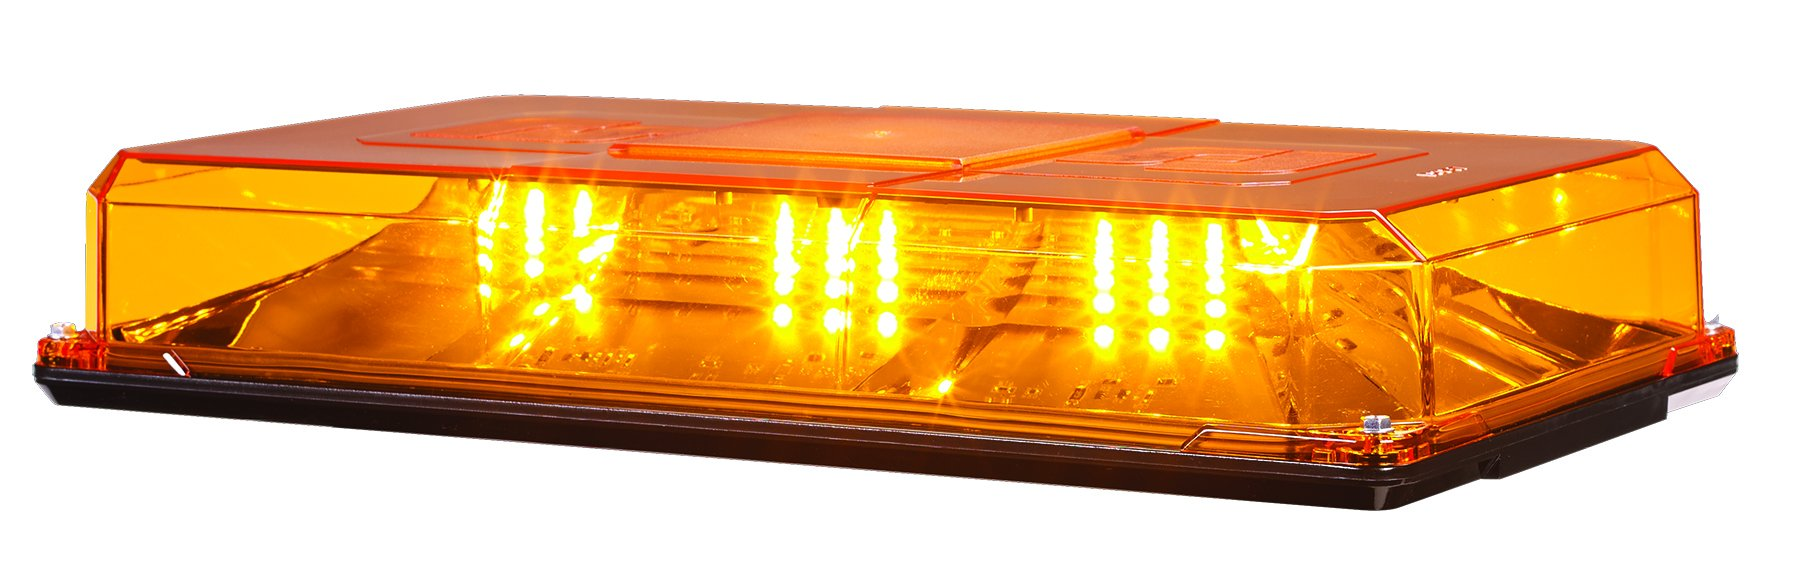 Federal Signal 454101HL-02 Amber 15.3'' x 8.4'' x 2.7'' Mini Highlighter LED Dome Light (Permanent Mount) by Federal Signal